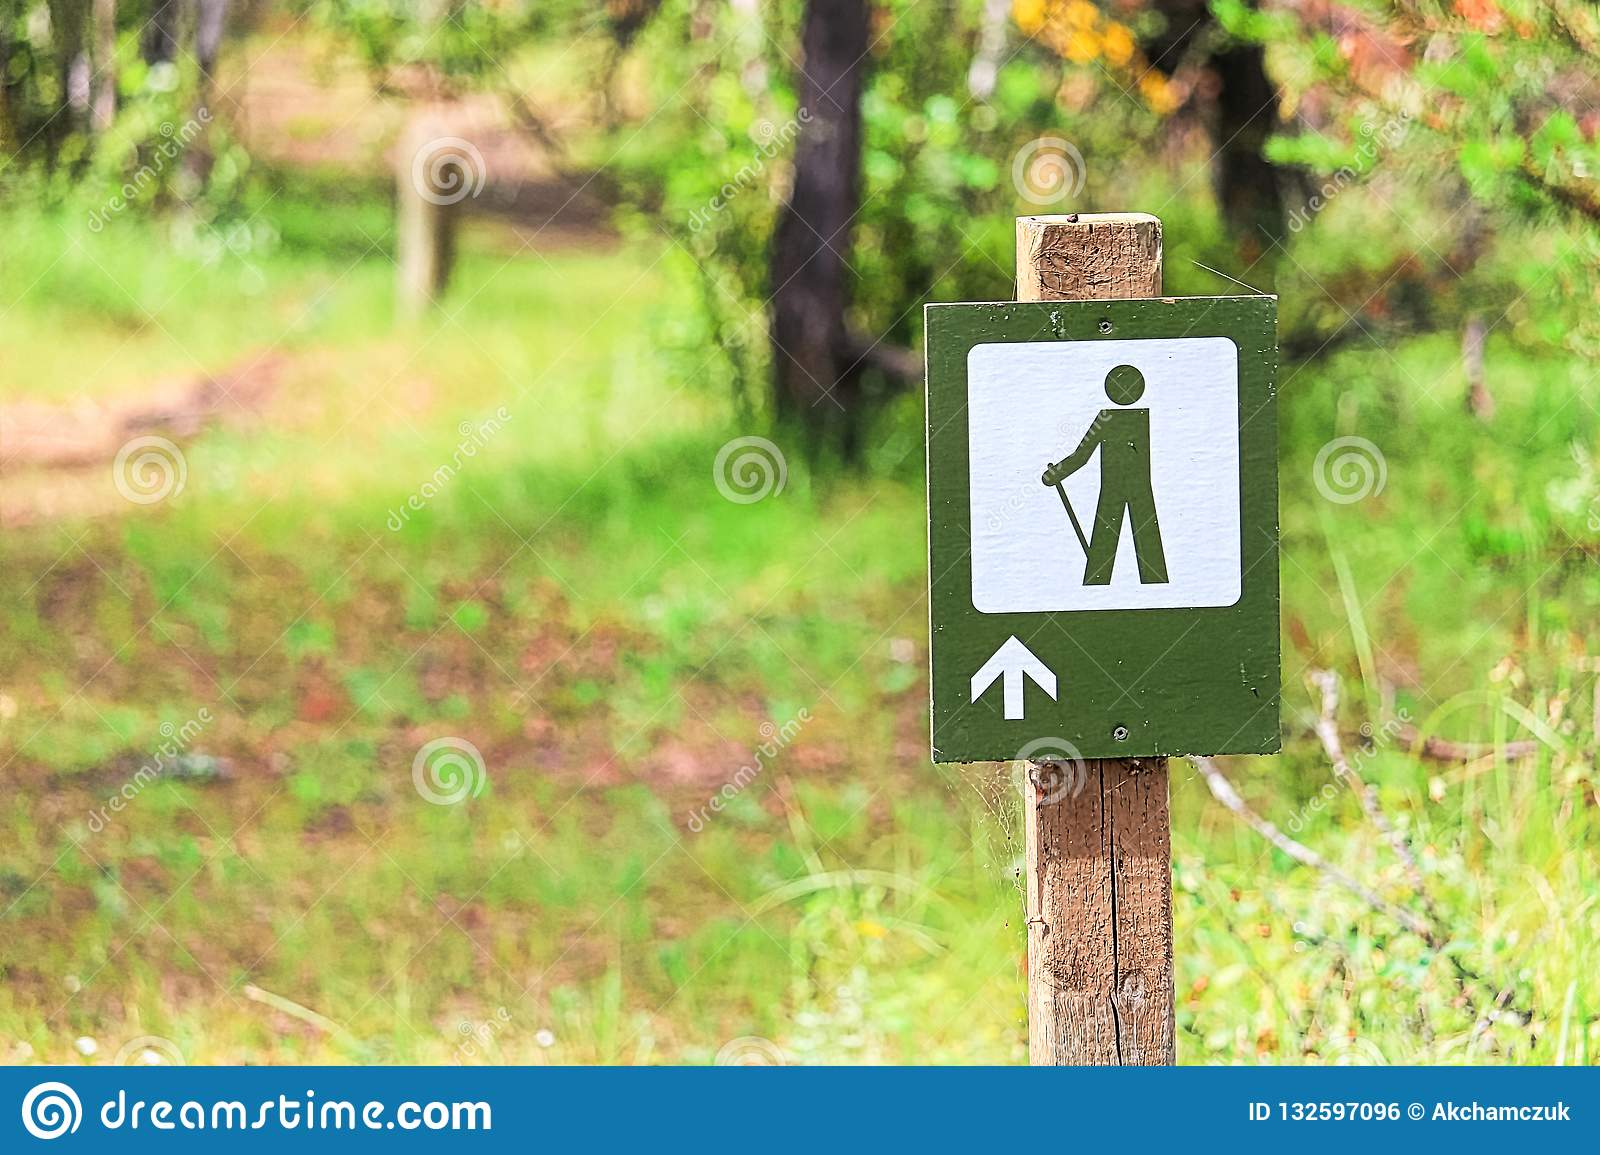 A hiking path sign with a forest in the background